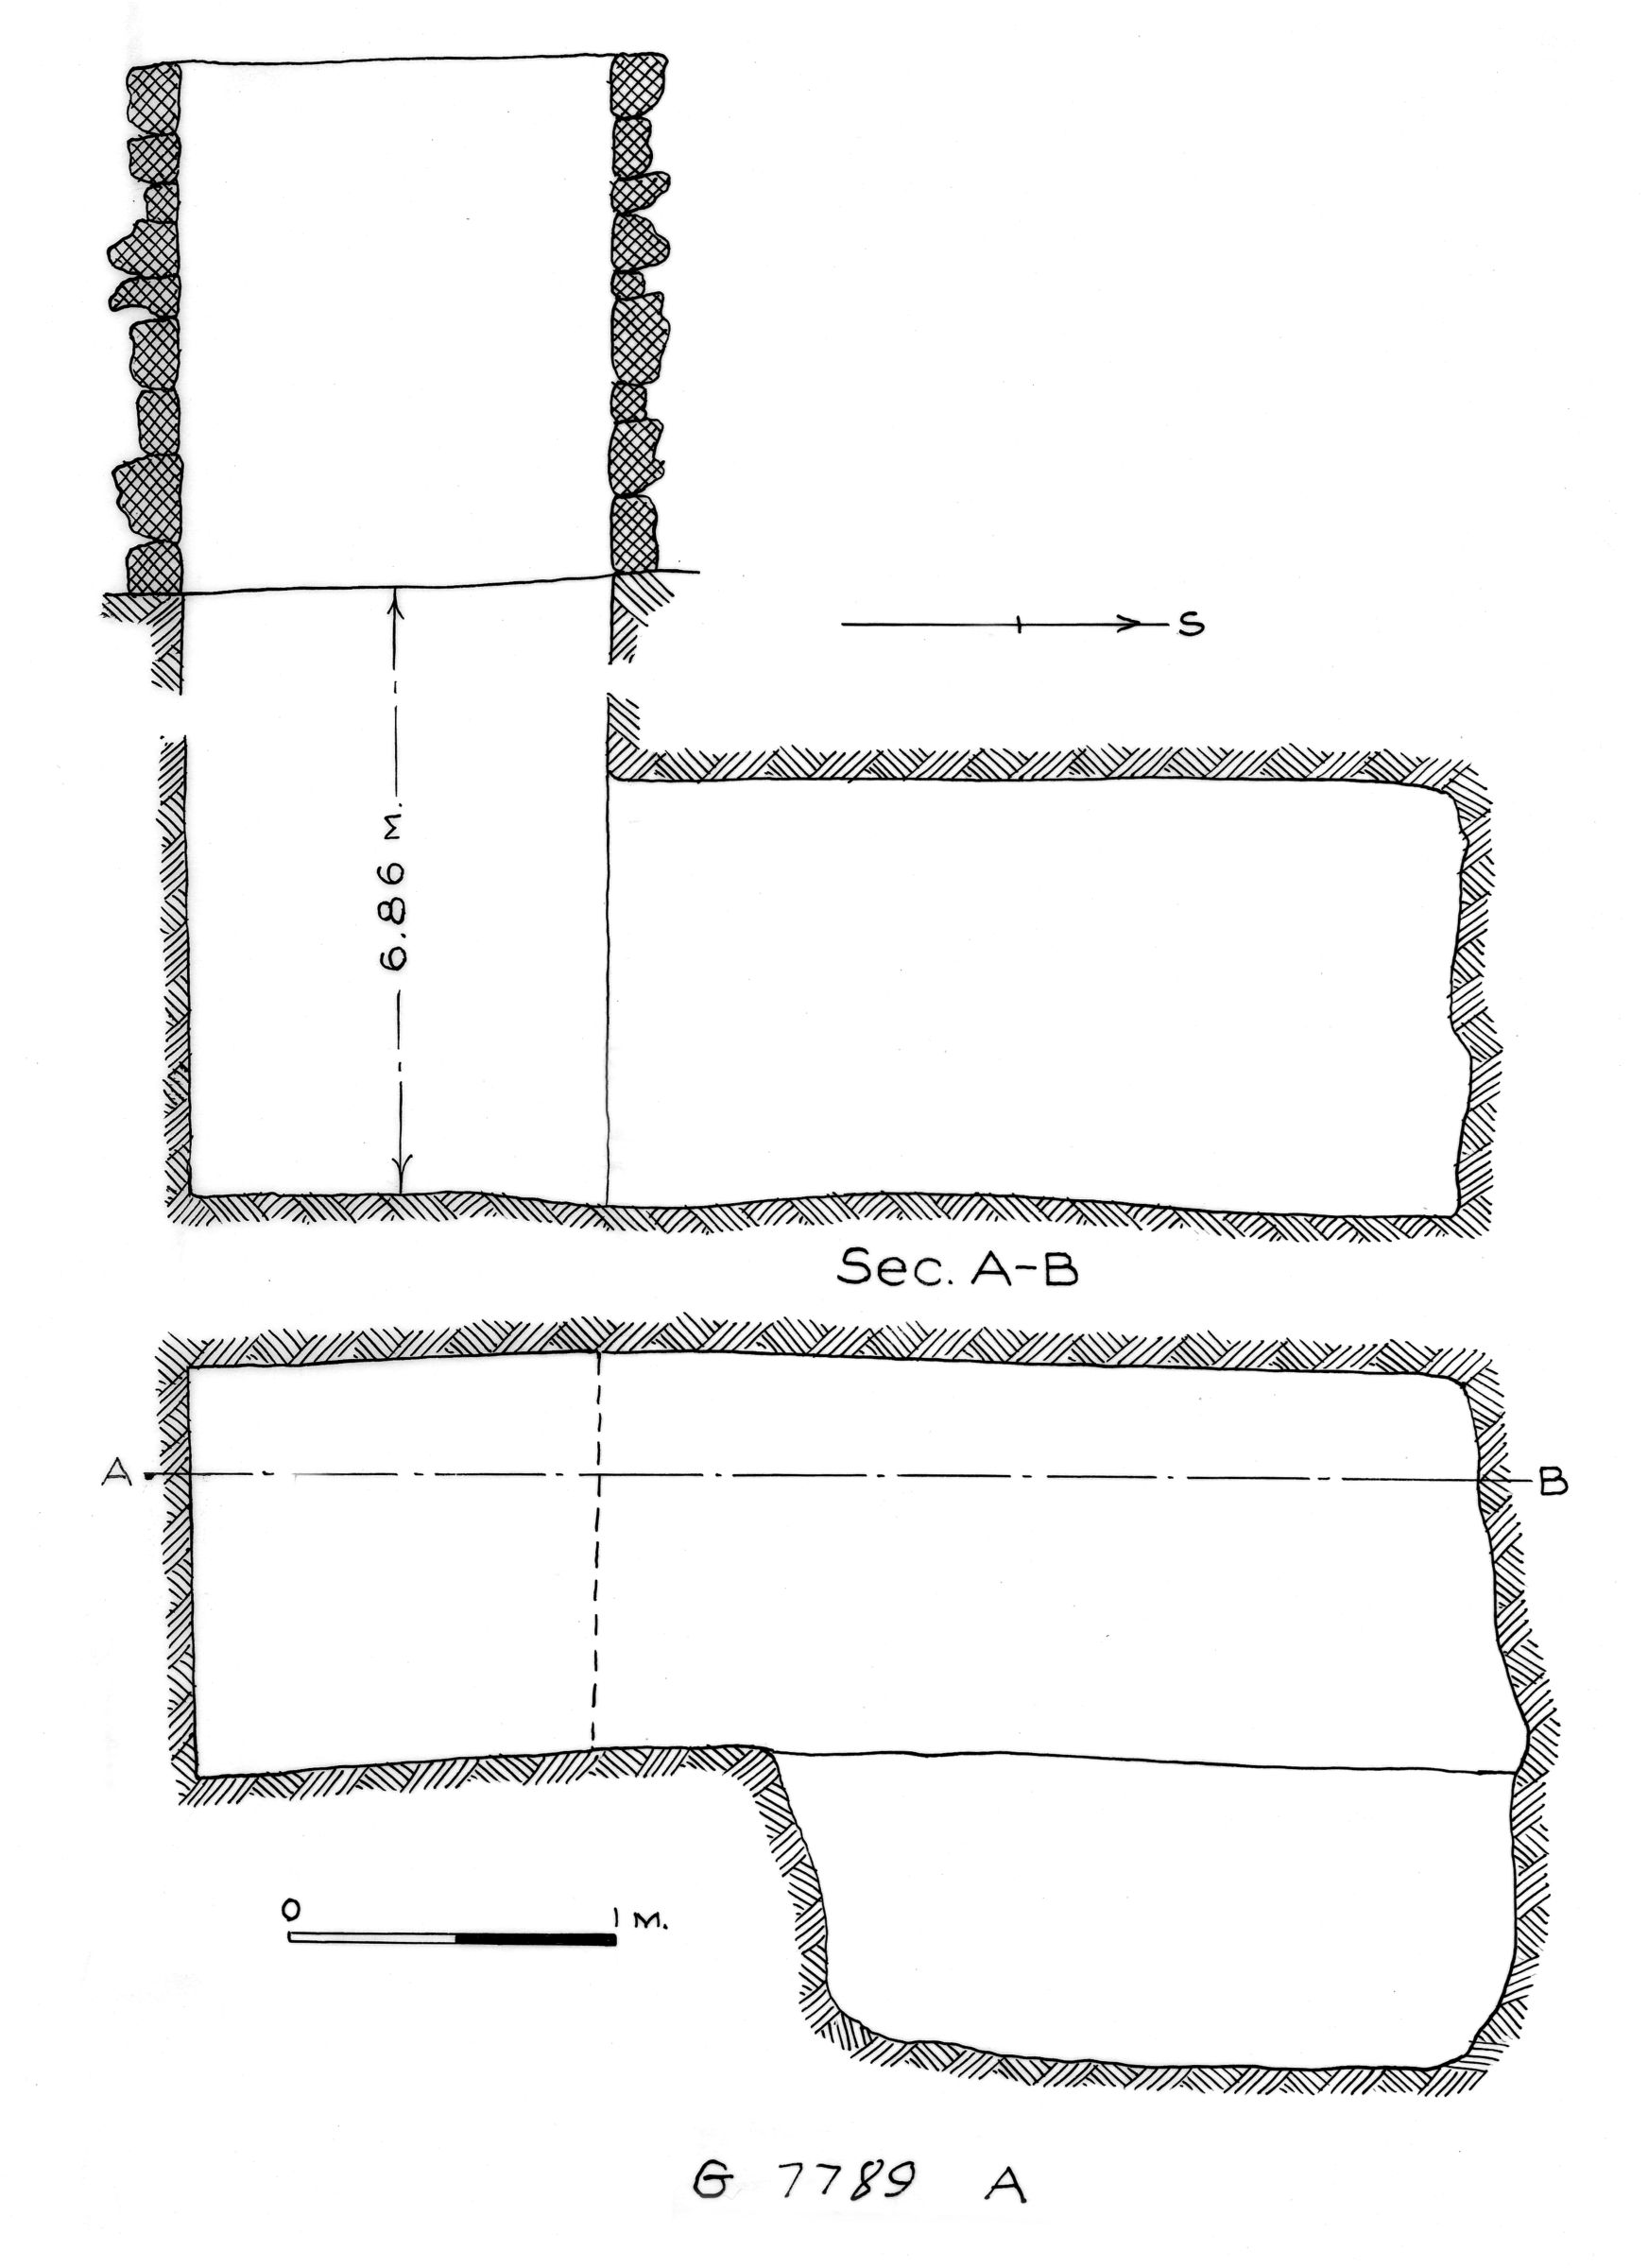 Maps and plans: G 7789, Shaft A